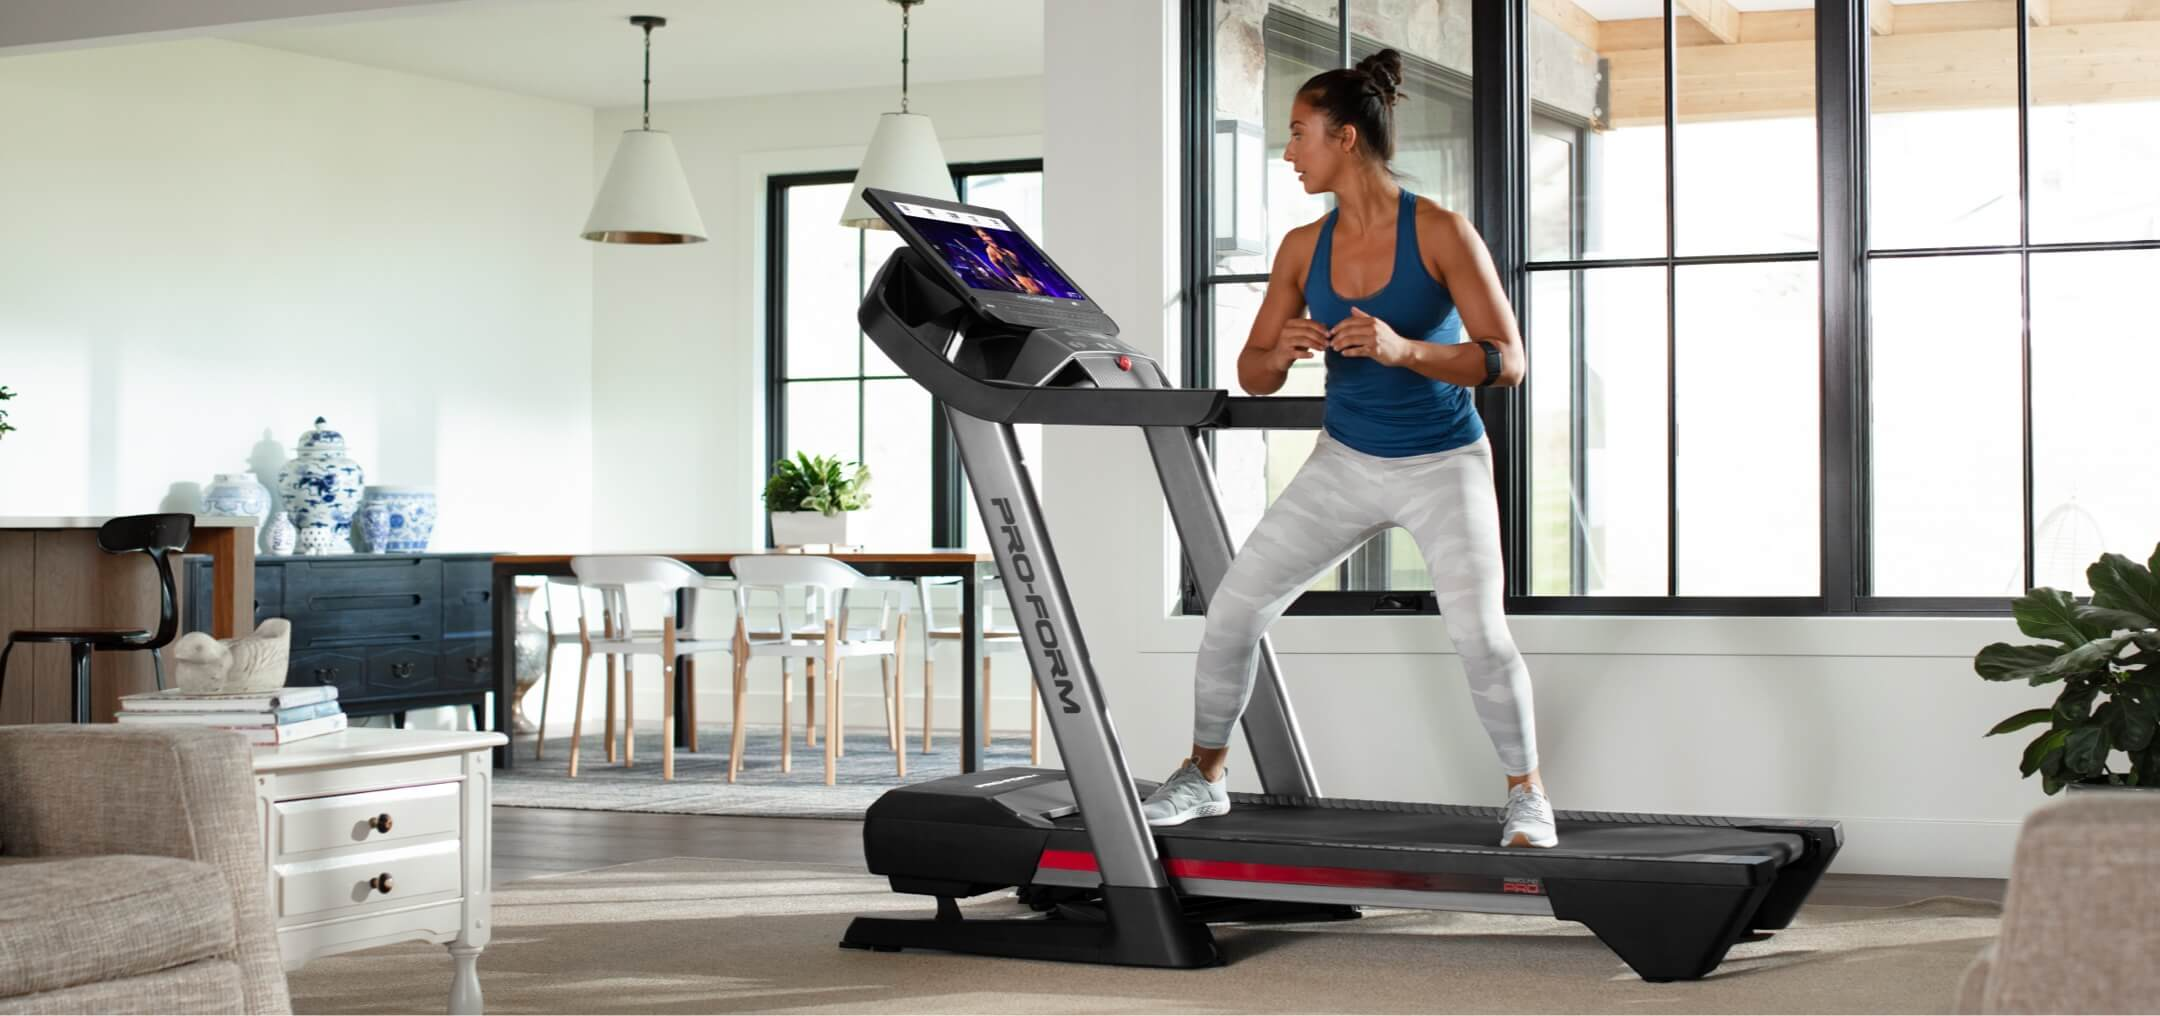 Woman doing a workout on the Pro 9000 treadmill edge.